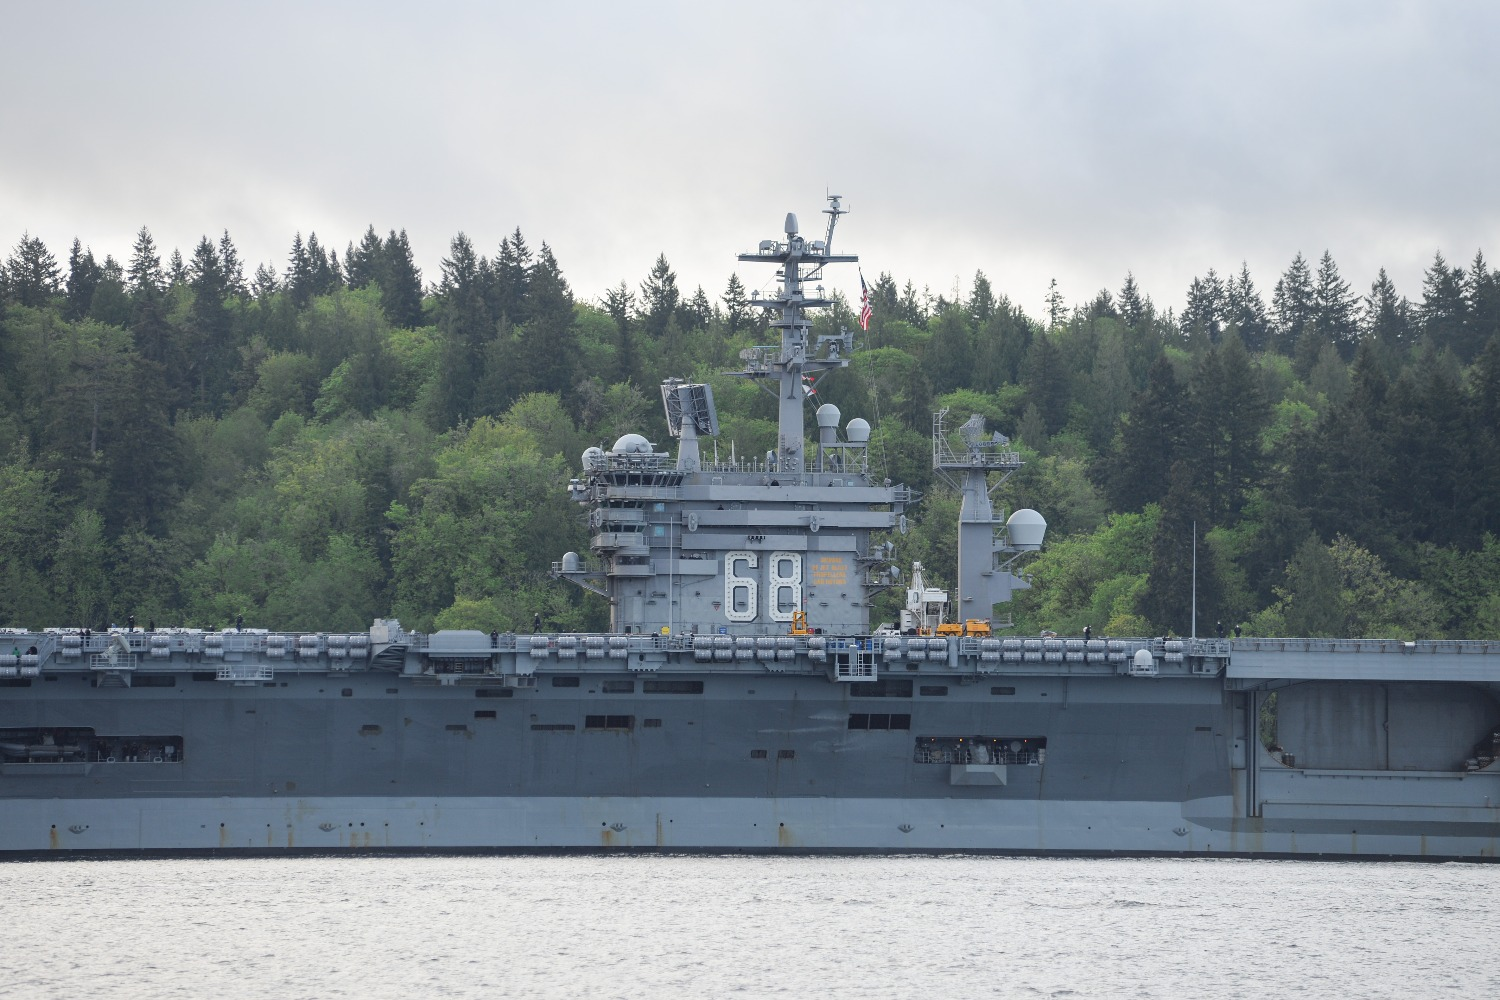 The USS Nimitz gets underway through Sinclair Inlet from Naval Base Kitsap in Bremerton, WA, on Apr. 27, 2020.